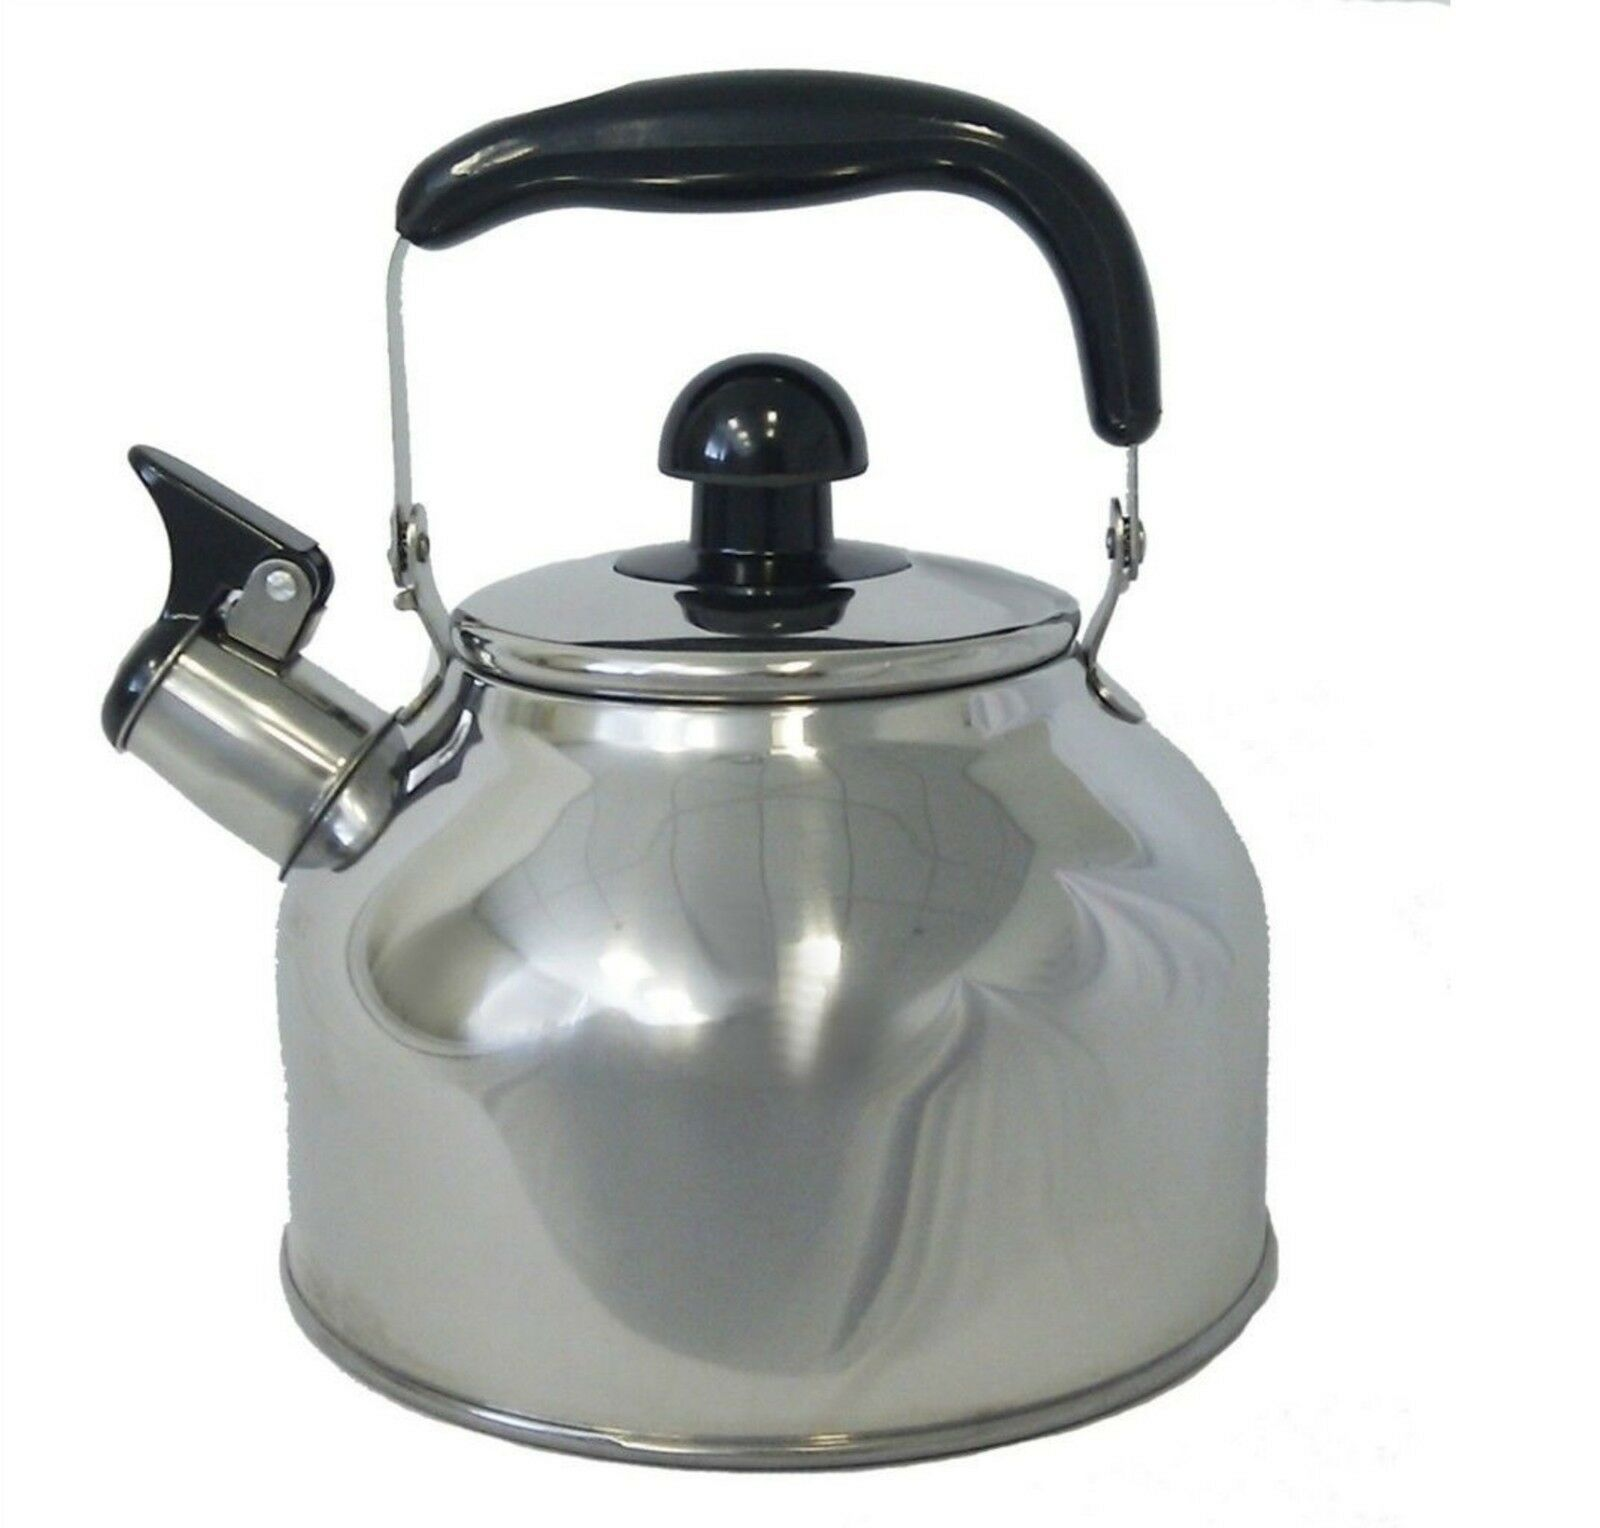 Tea Kettle With Strainer Stainless Steel Large 4 5 Liter Quart Whistling Tea Kettle